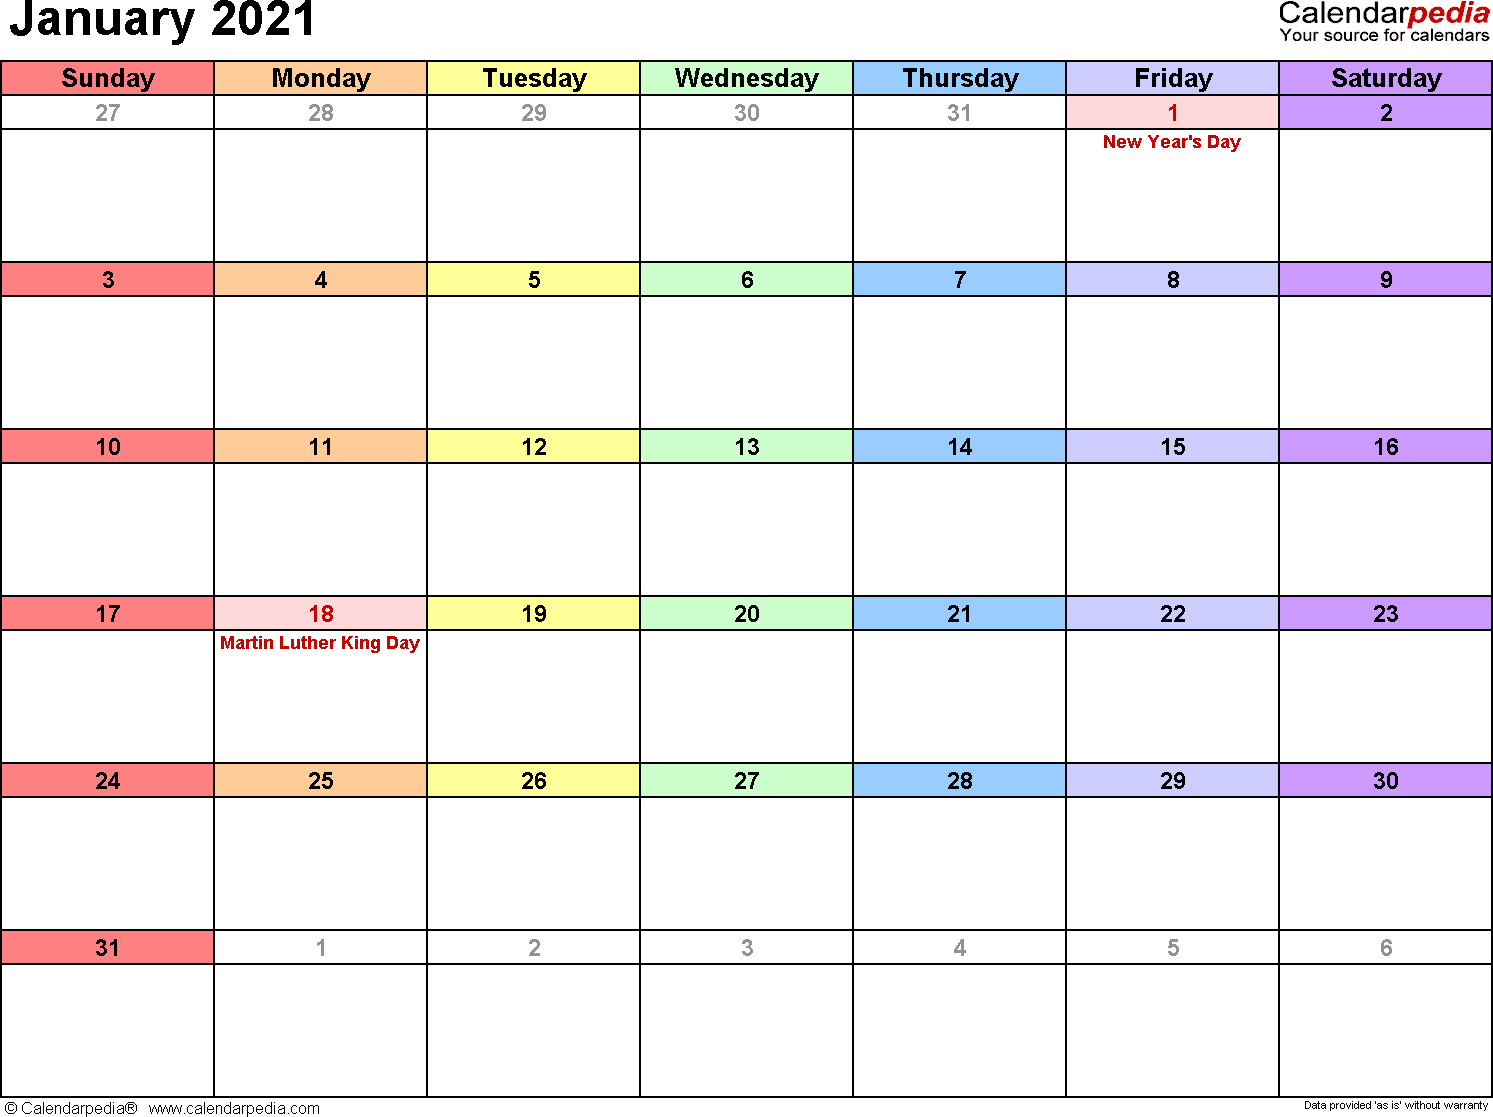 January 2021 - calendar templates for Word, Excel and PDF